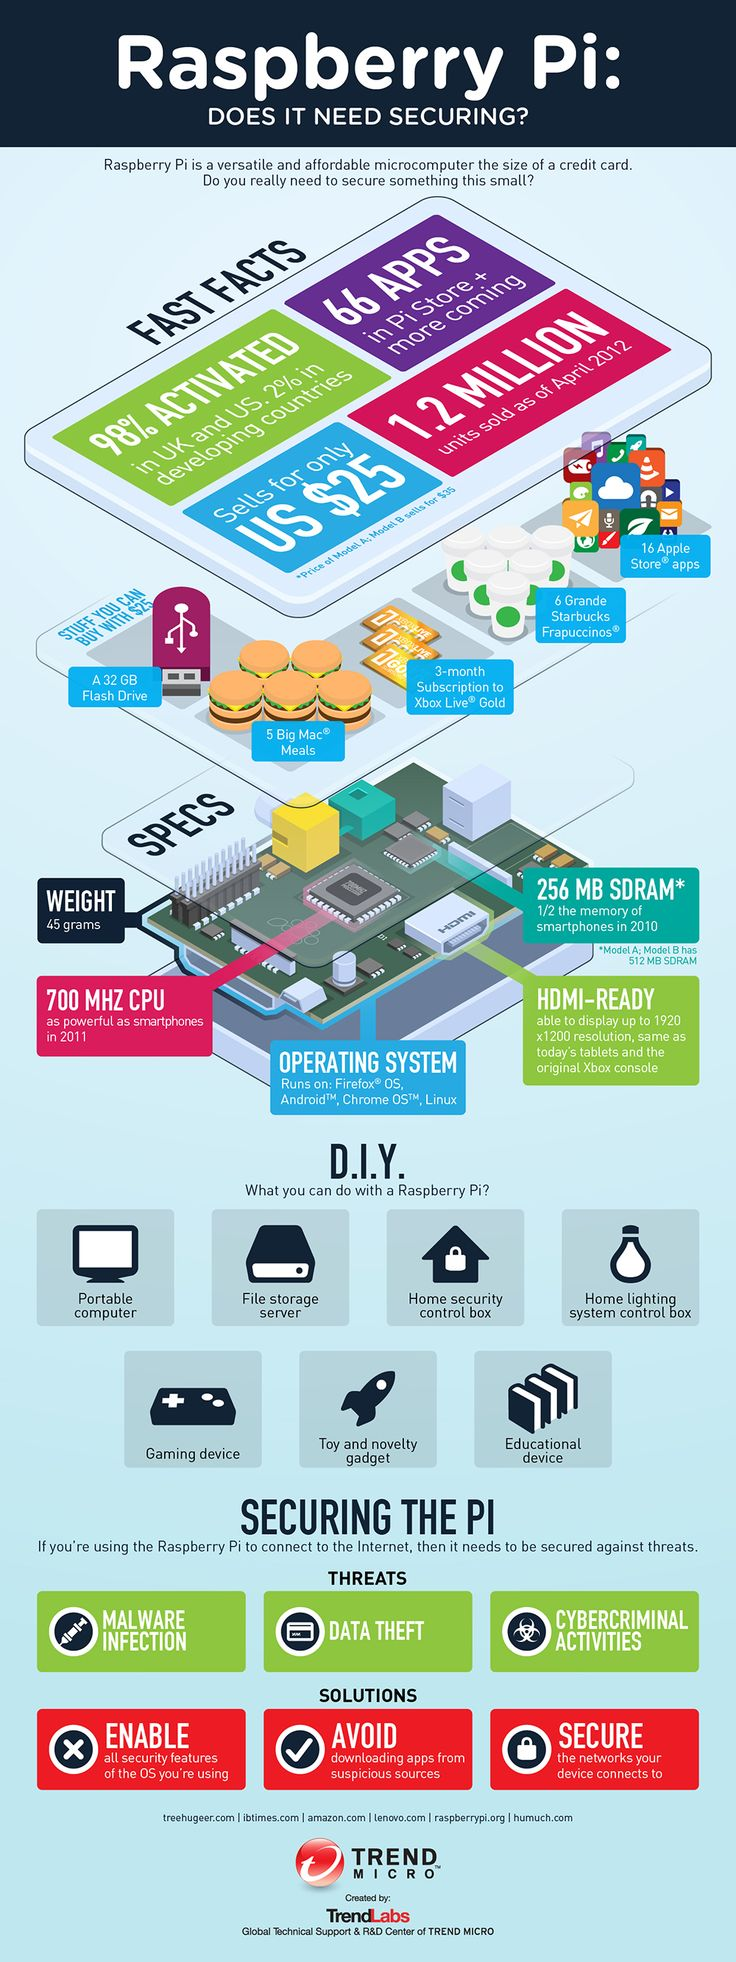 The Raspberry Pi: Raspberries Pi Projects,  Internet Site,  Website, Web Site, Raspi Infographic, Techno Fun, Raspberrypi Infographic, Computers Stuff, Infographic Technology